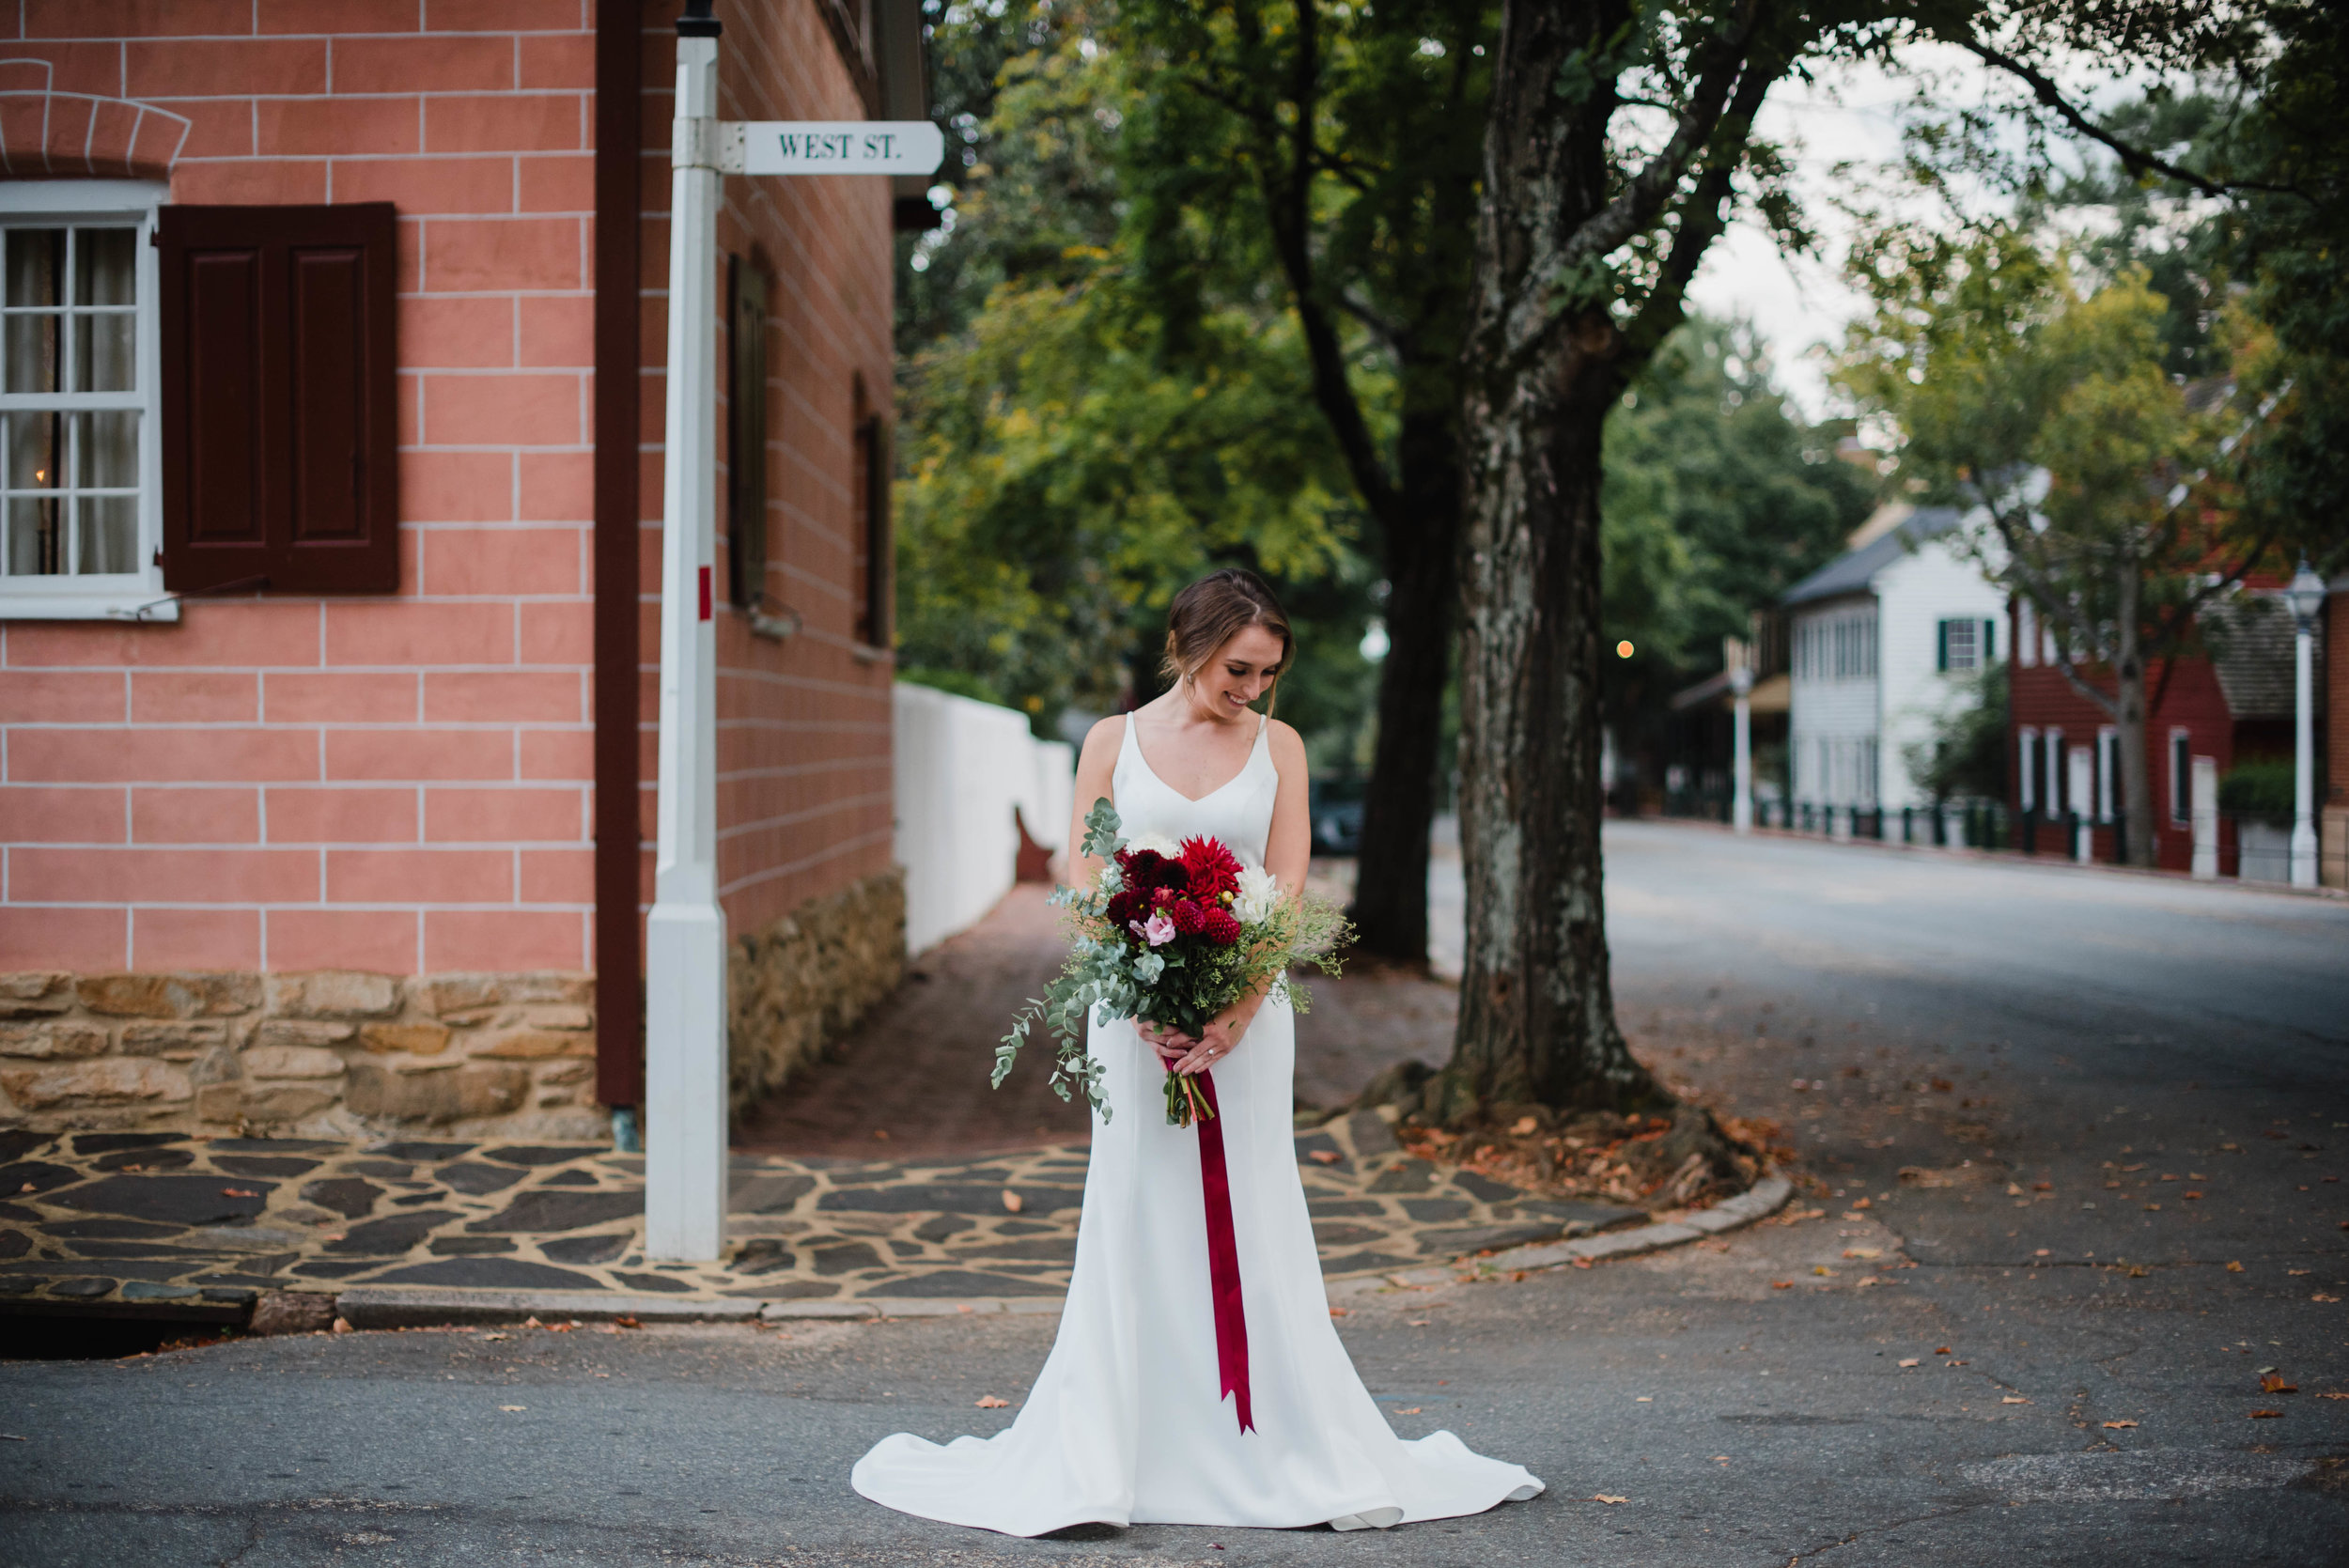 Regan bridals-174.jpg